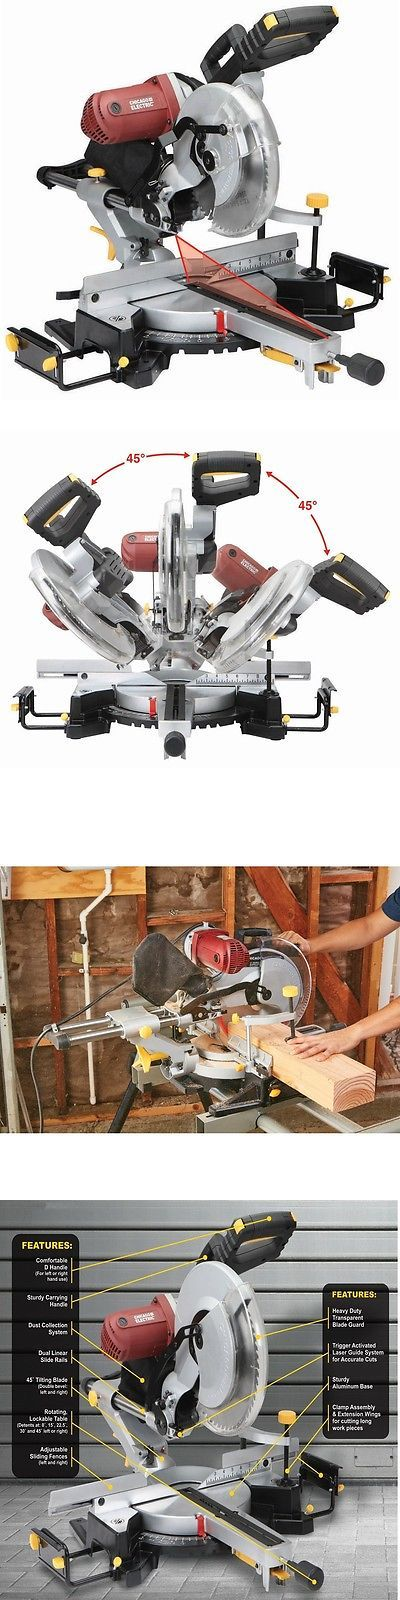 Miter and Chop Saws 20787: 12 Double-Bevel Sliding Compound Miter Saw With Laser Guide - Nib Free Fedex 48 -> BUY IT NOW ONLY: $173.99 on eBay!